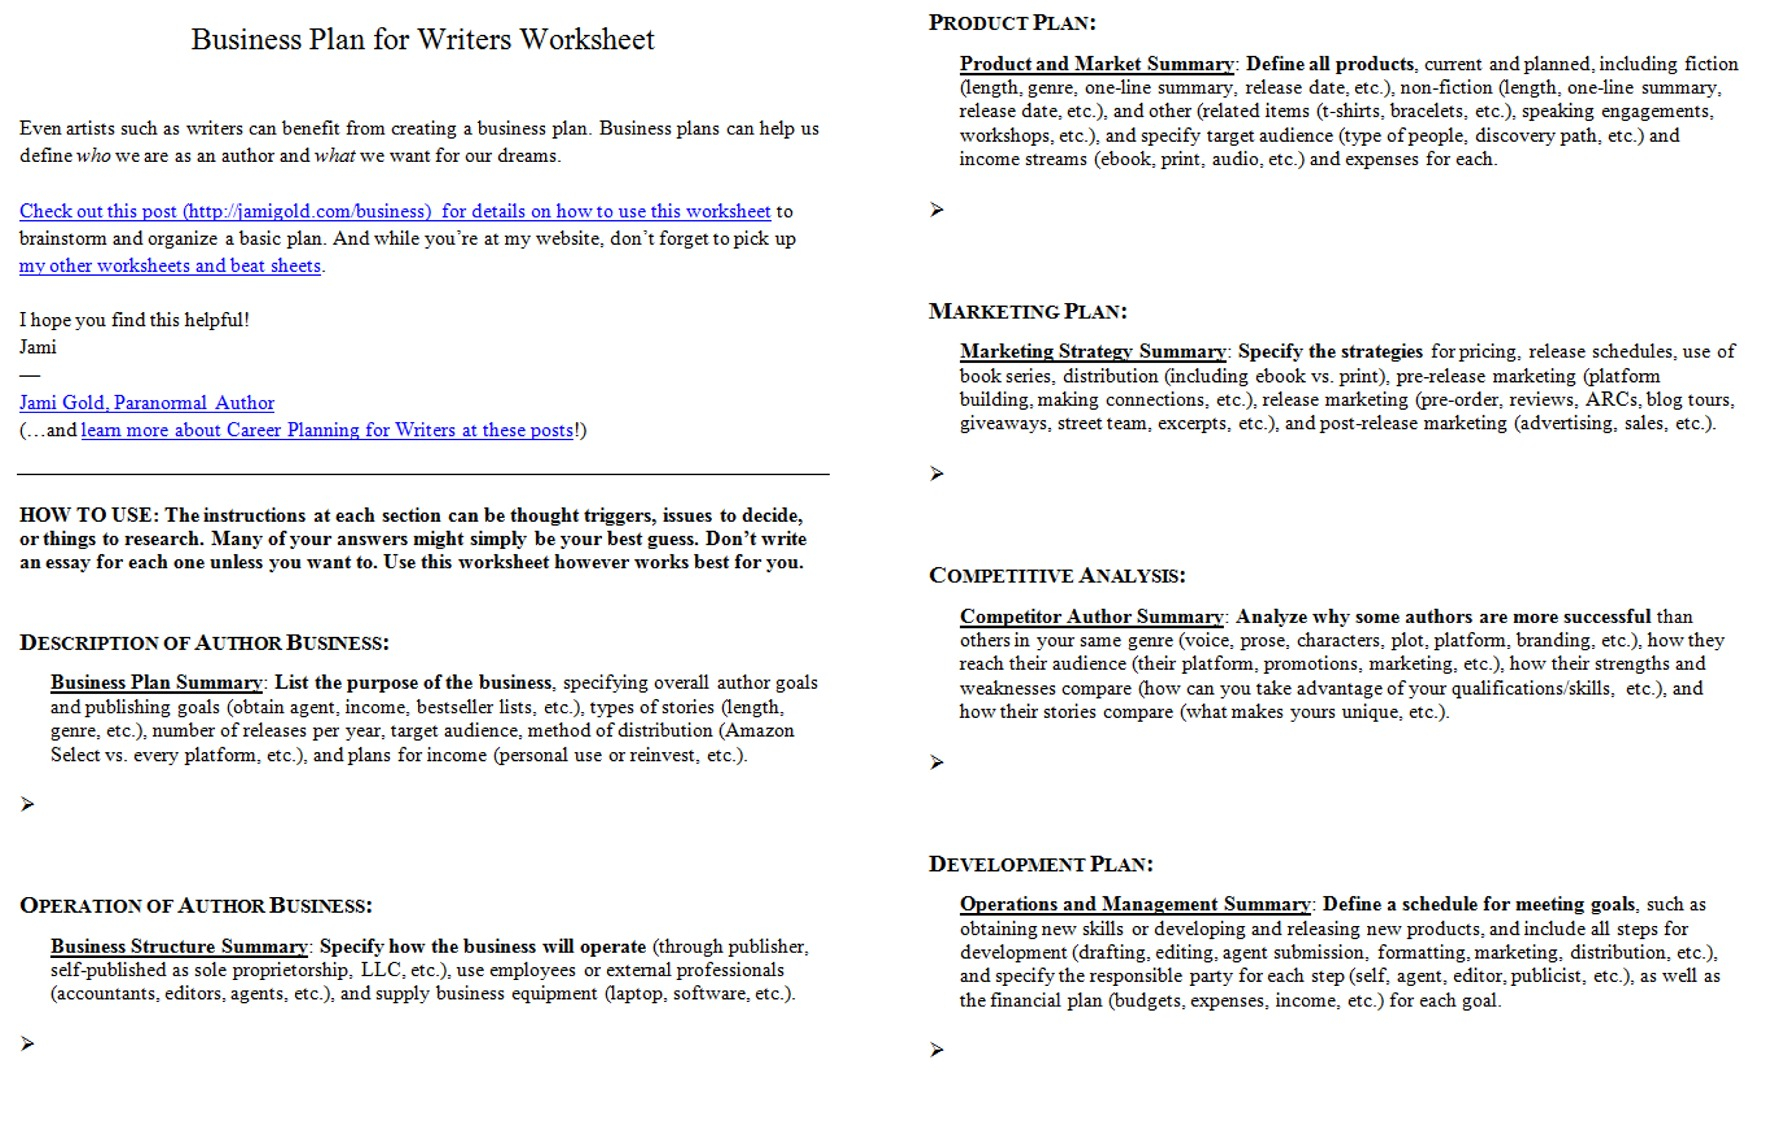 Aldiablosus  Splendid Worksheets For Writers  Jami Gold Paranormal Author With Inspiring Screen Shot Of Both Pages Of The Business Plan For Writers Worksheet With Adorable Polar Puzzle Math Worksheet Answers Also Pre Algebra With Pizzazz Worksheet In Addition Simple But Tough Worksheet Answers And Personal Monthly Budget Worksheet Excel As Well As Bohr Model Worksheet Answer Key Additionally The Atoms Family Worksheet From Jamigoldcom With Aldiablosus  Inspiring Worksheets For Writers  Jami Gold Paranormal Author With Adorable Screen Shot Of Both Pages Of The Business Plan For Writers Worksheet And Splendid Polar Puzzle Math Worksheet Answers Also Pre Algebra With Pizzazz Worksheet In Addition Simple But Tough Worksheet Answers From Jamigoldcom